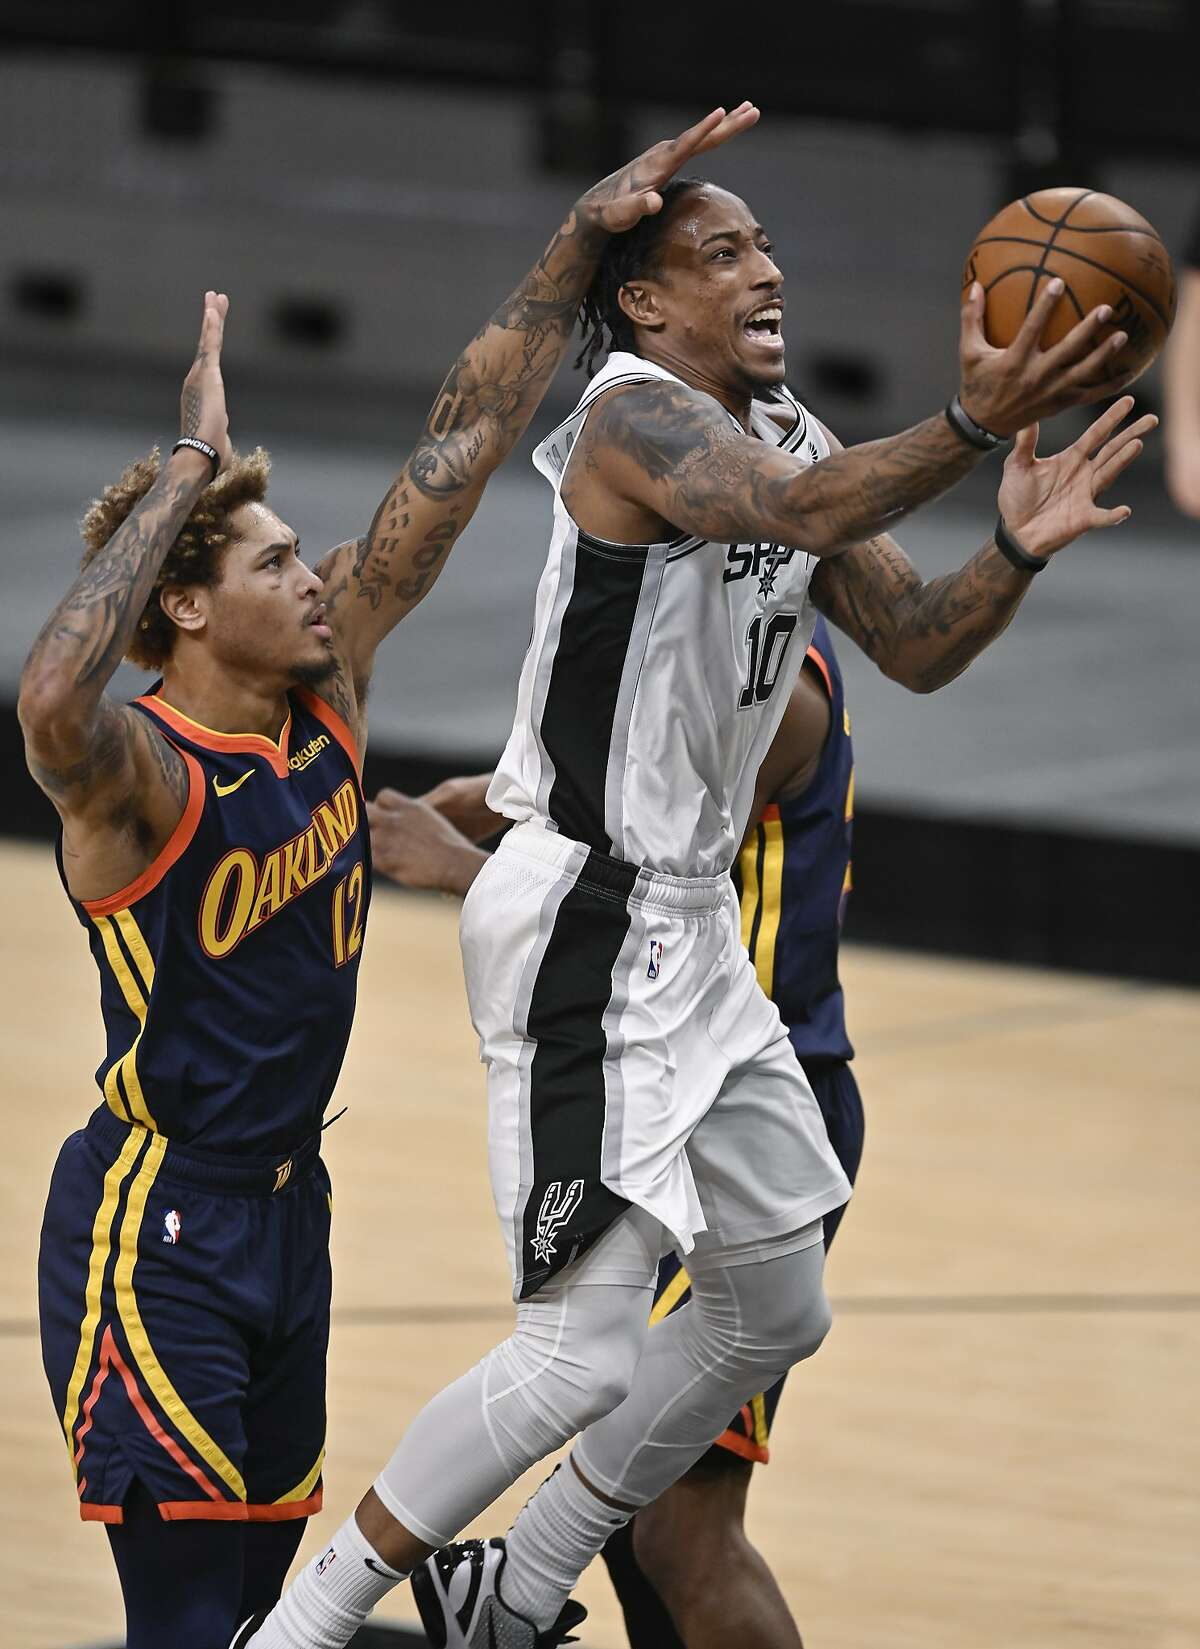 San Antonio Spurs' DeMar DeRozan (10) shoots as he is defended by Golden State Warriors' Kelly Oubre, Jr., left, during the first half of an NBA basketball game, Monday, Feb. 8, 2021, in San Antonio.